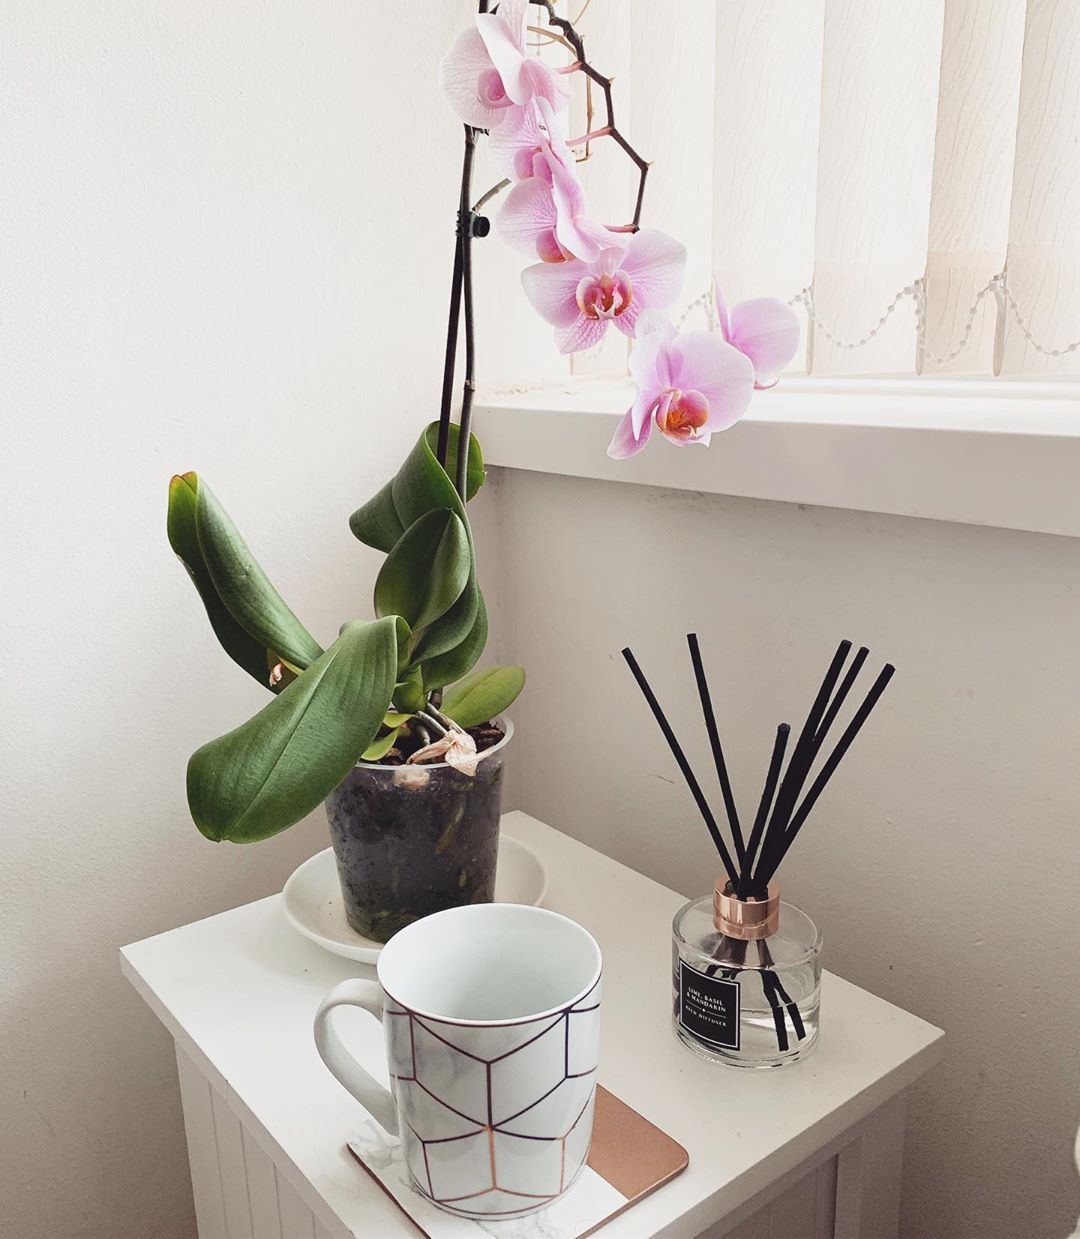 My New Orchid Is Adorable Asda Plants Orchid Flowers Plantpot Bedroom Interior House Home Homedecor Homeinterior Acc Orchidaceae Plants Orchids